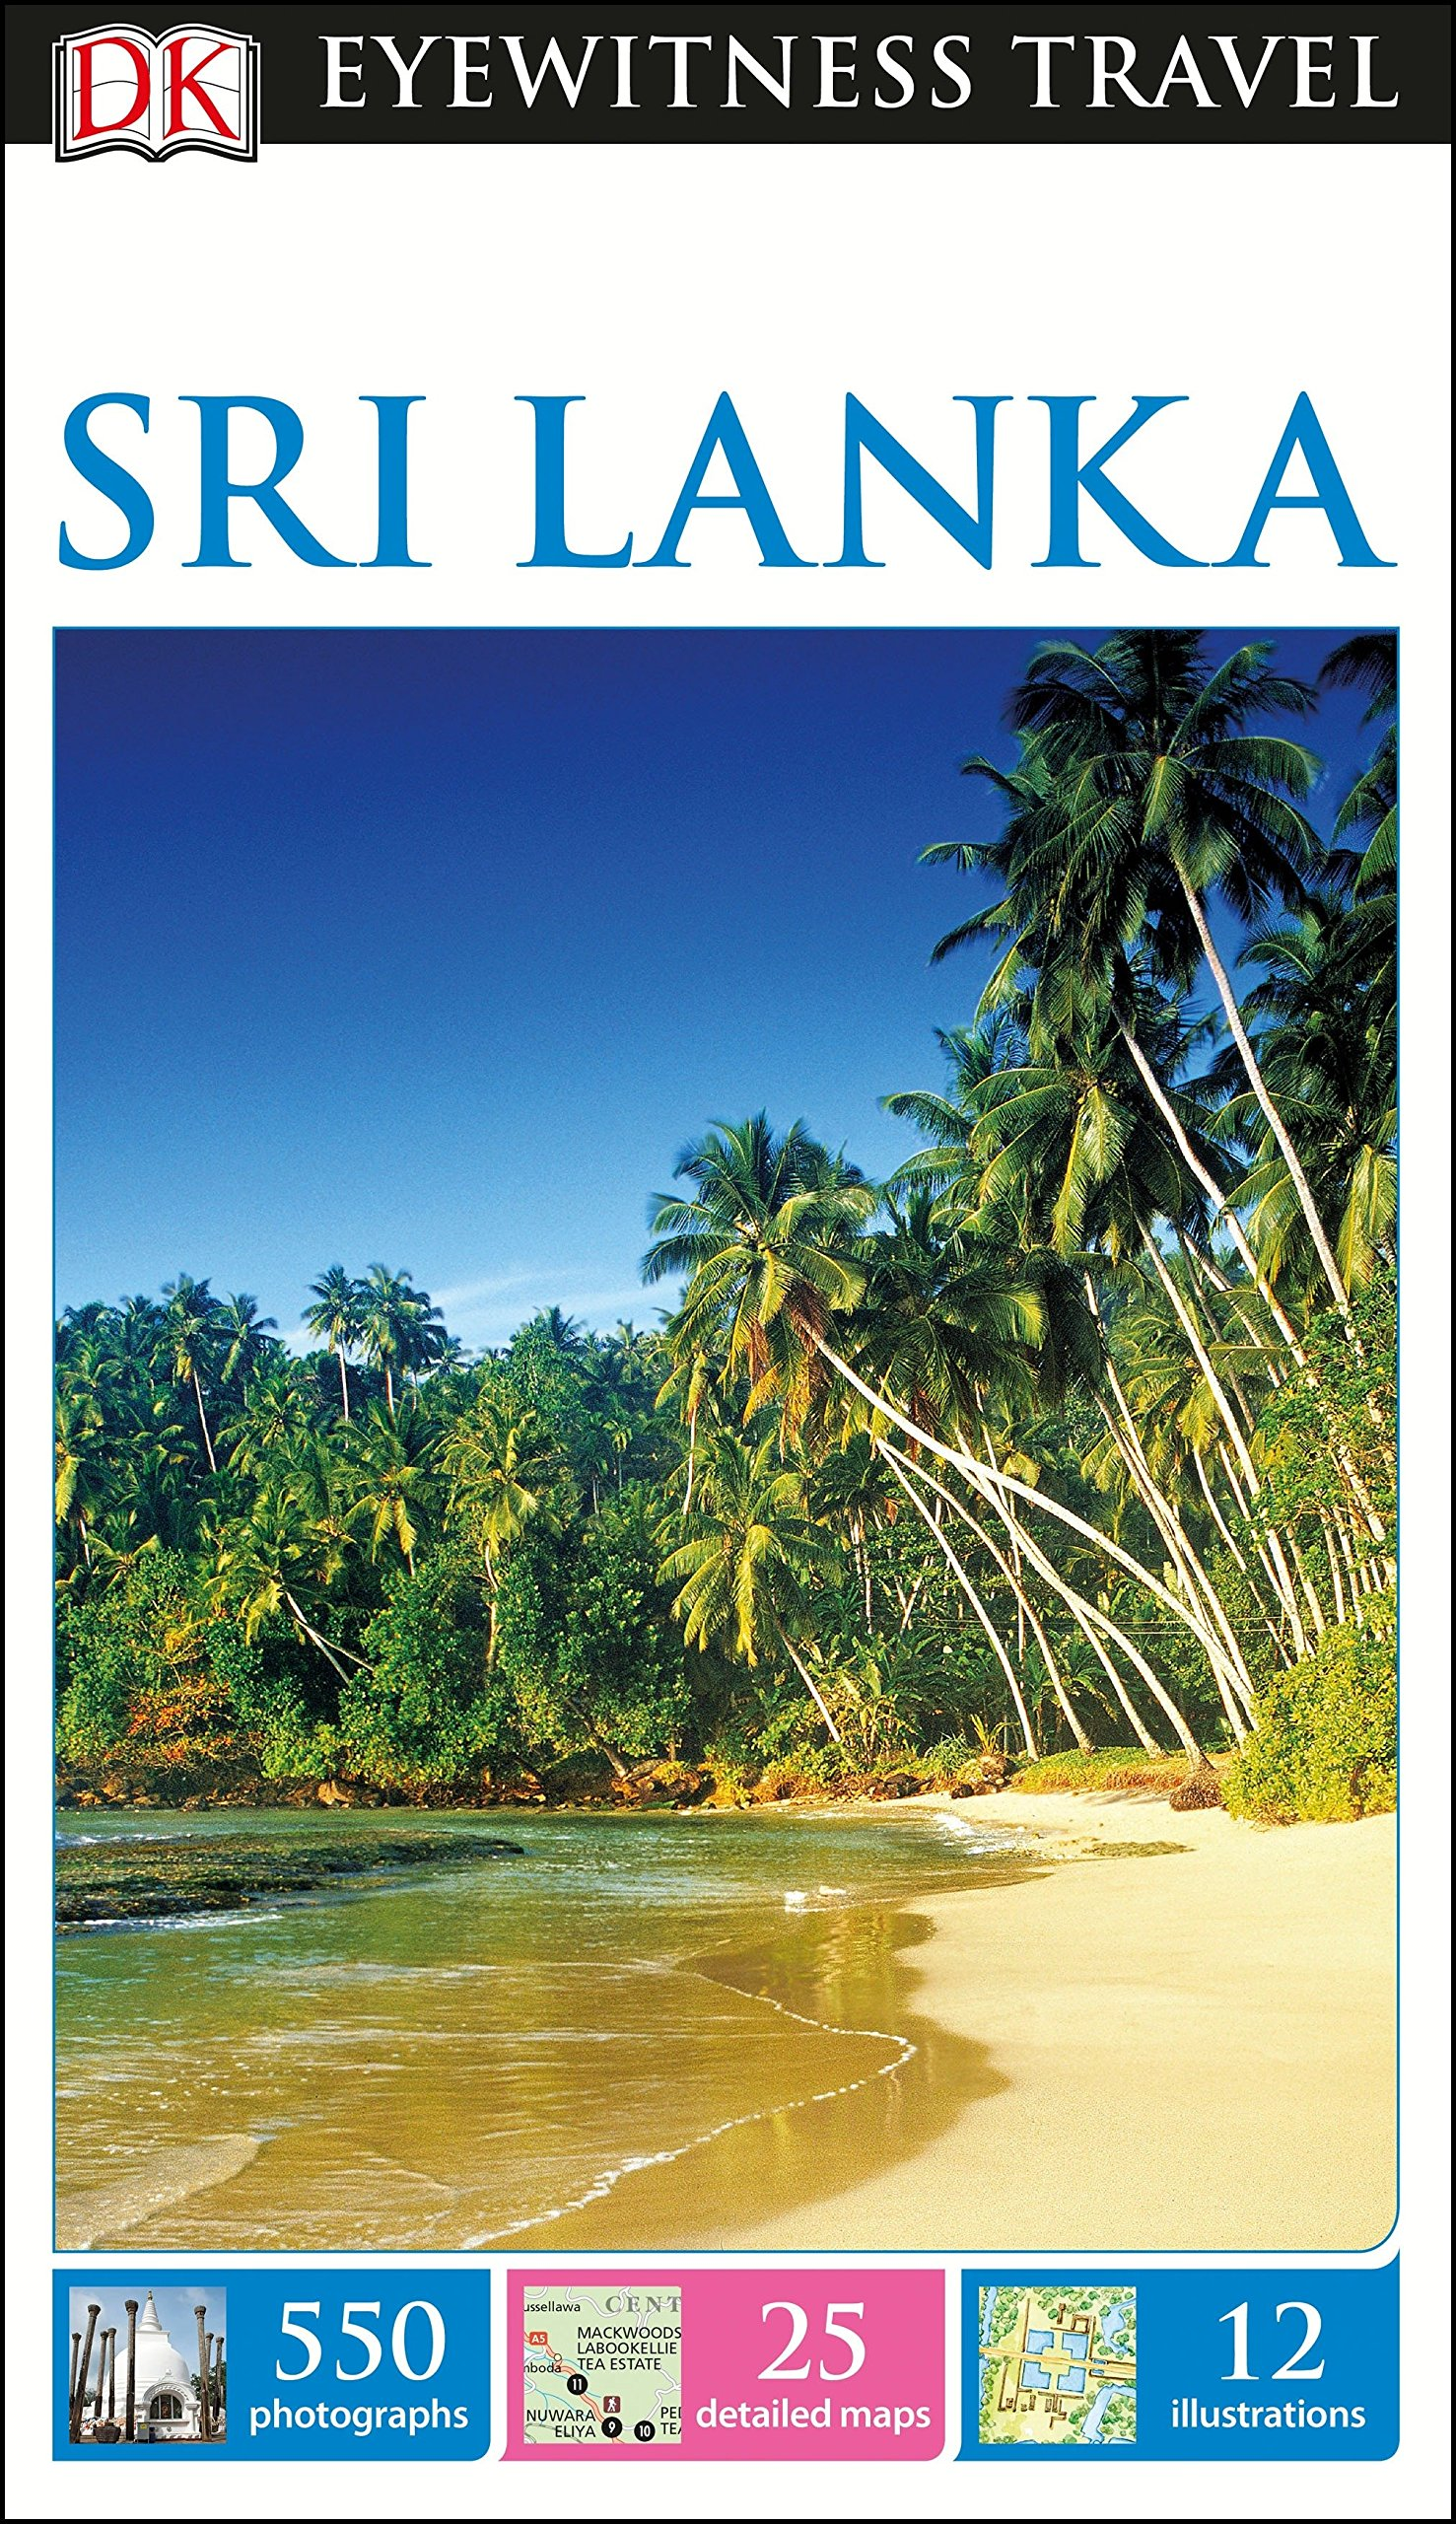 DK Eyewitness Travel Guide Sri Lanka pdf